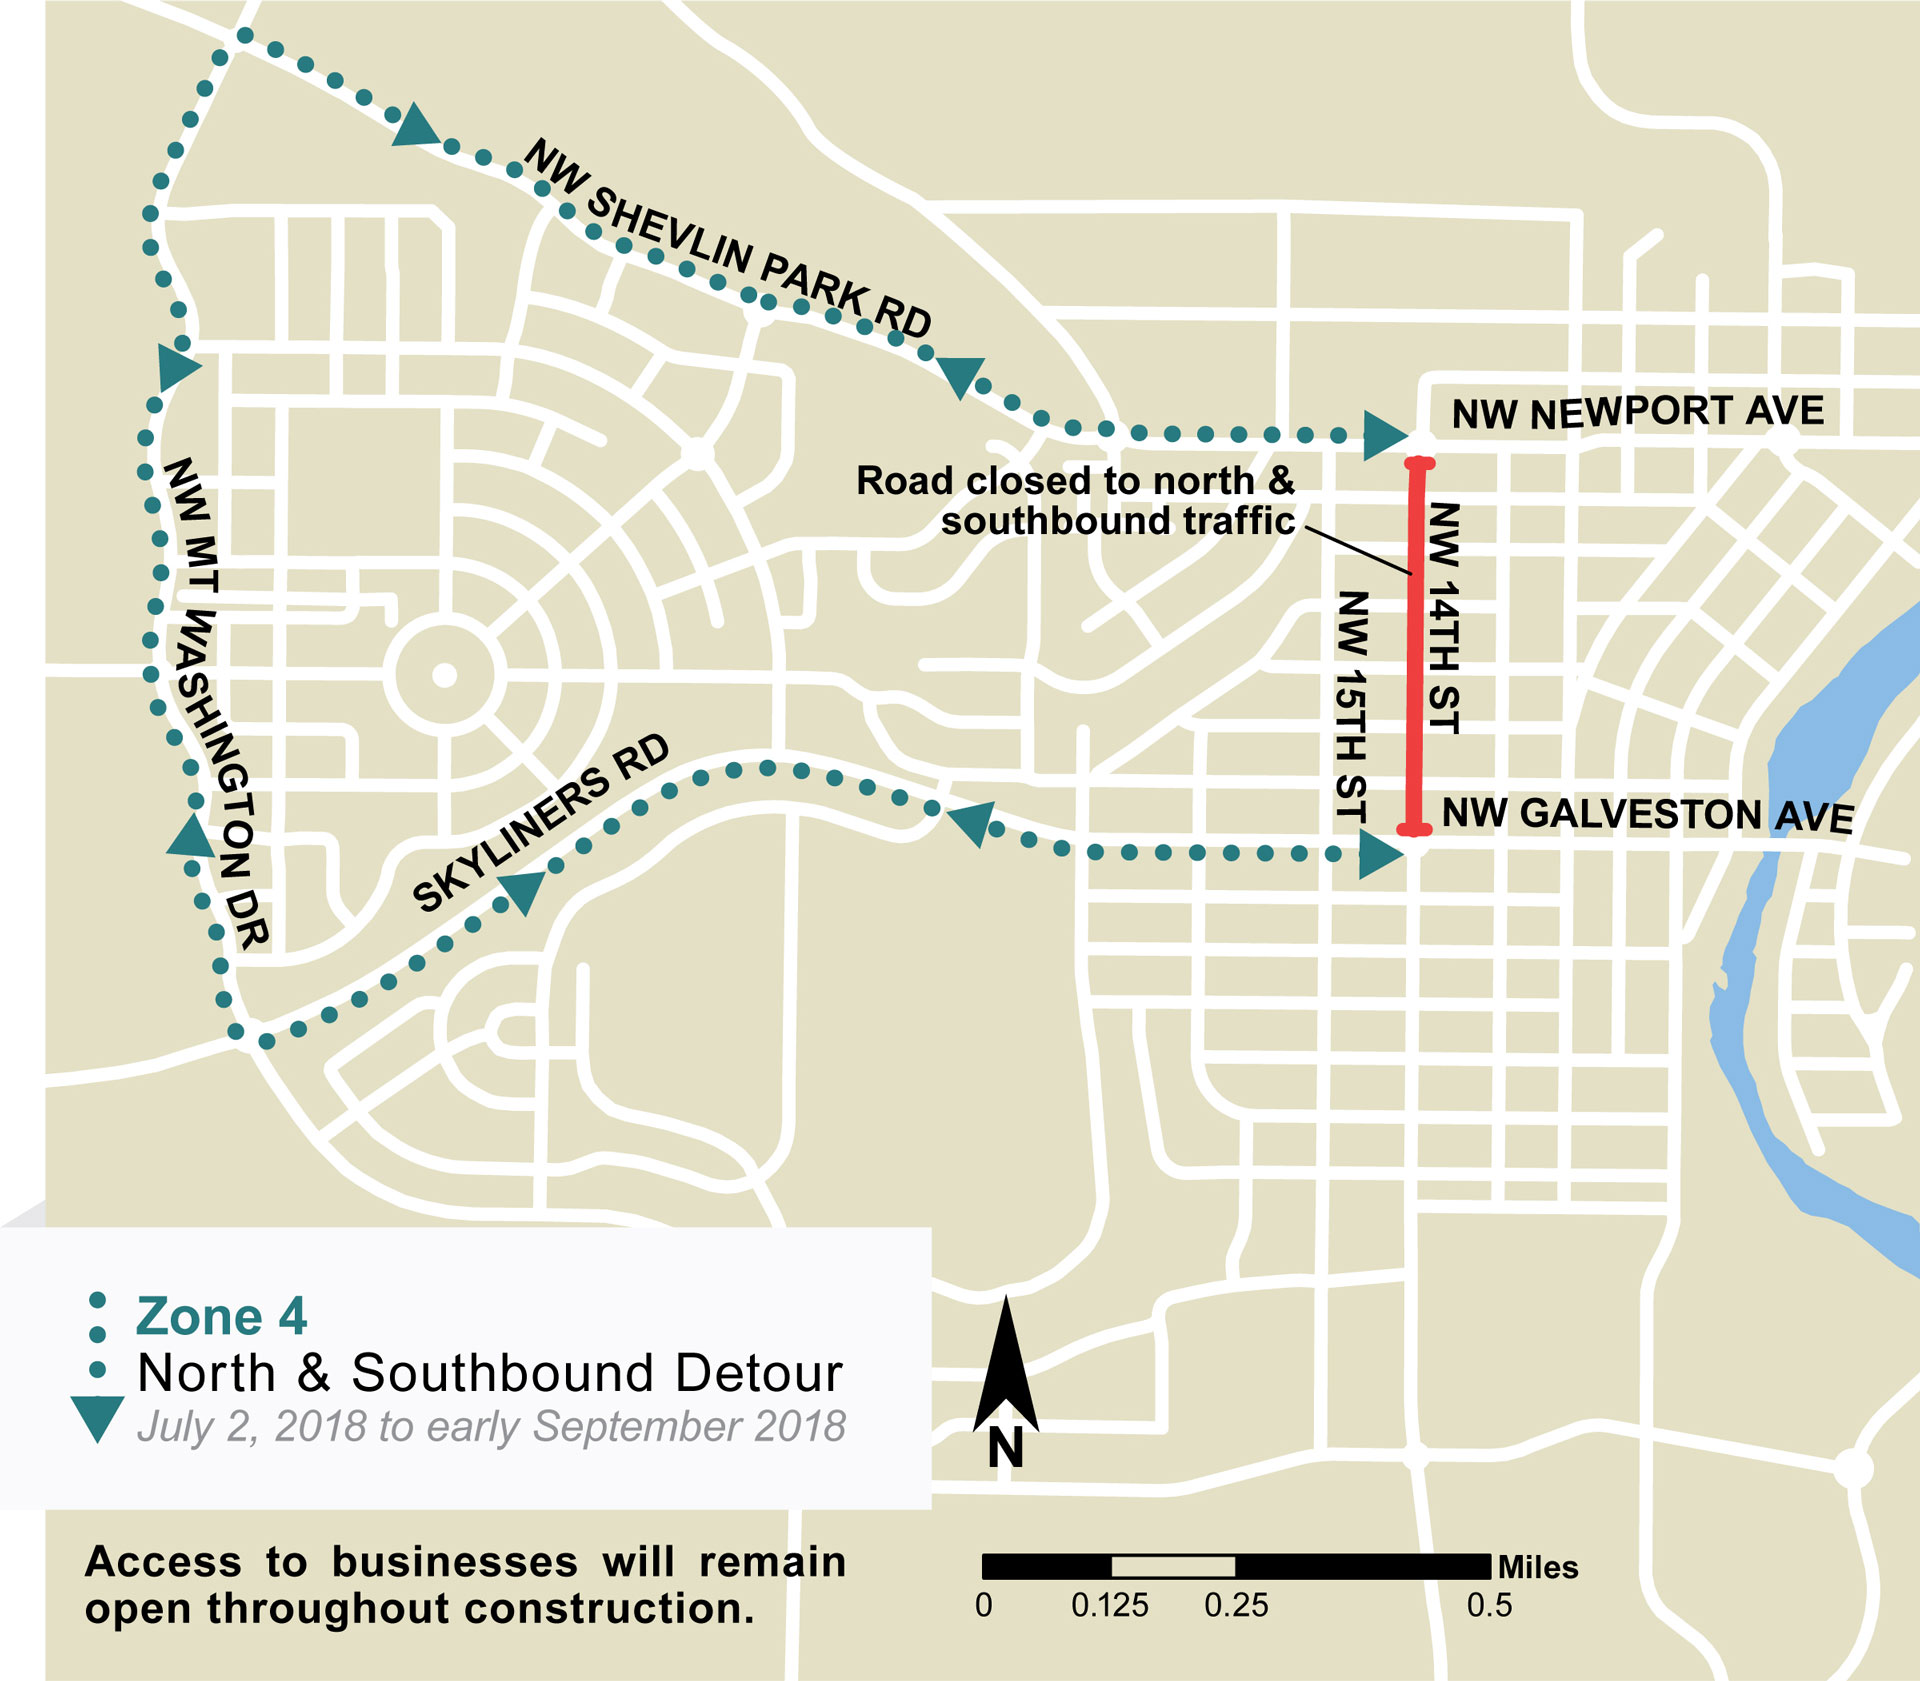 Detour map showing complete closure of 14th Street between Newport Avenue and Galveston Avenue. Southbound detour involves traveling west on Newport Avenue/Shevlin Park Road, South on Mt Washington Drive, east on Skyliners Road/Galveston Ave to meet back up with 14th Street. The northbound detour is the reverse. Detour will remain in effect until early September.